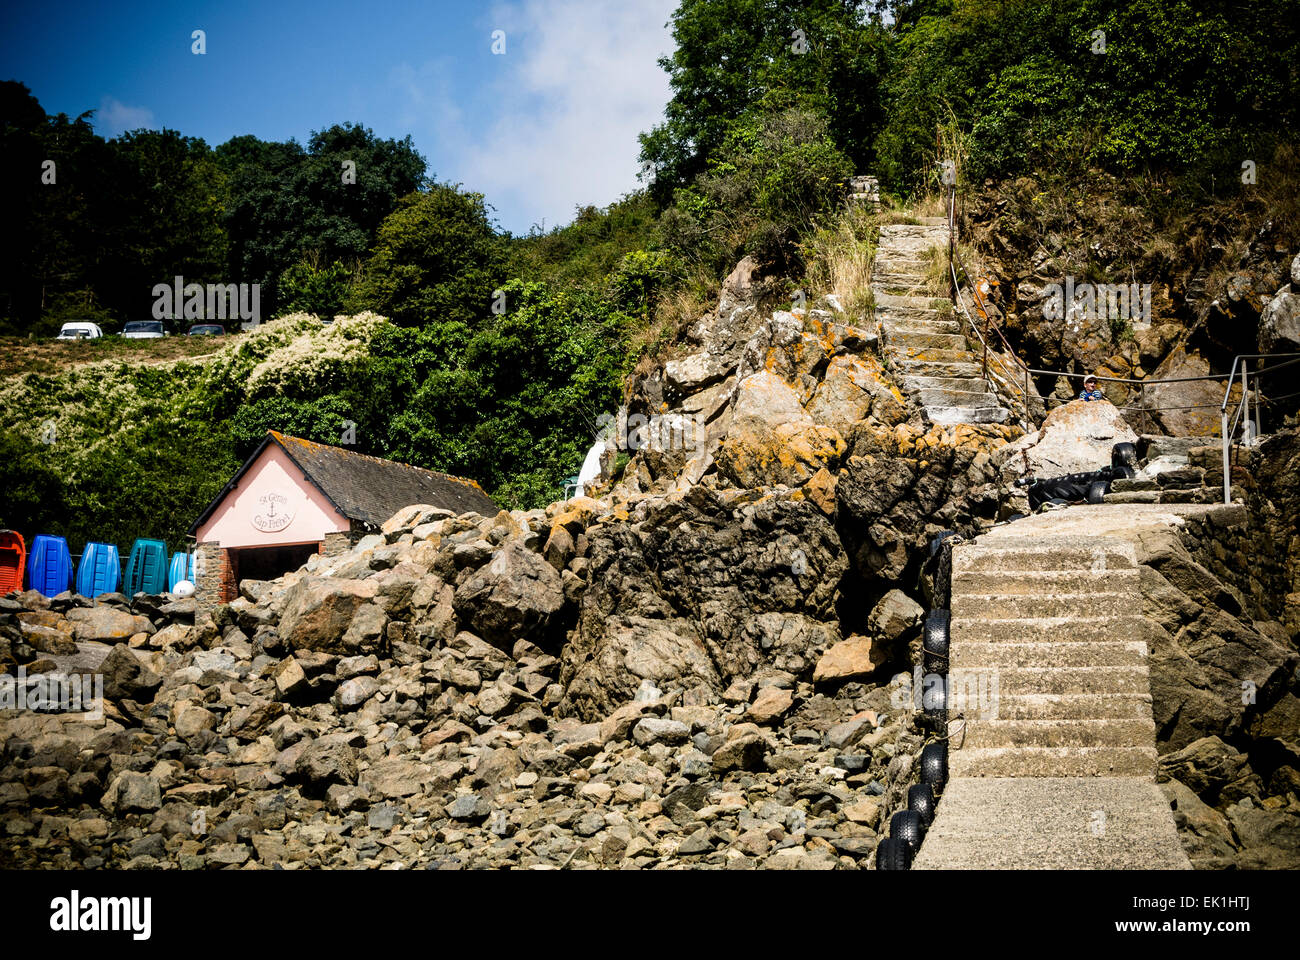 stairways on a slope - Stock Image